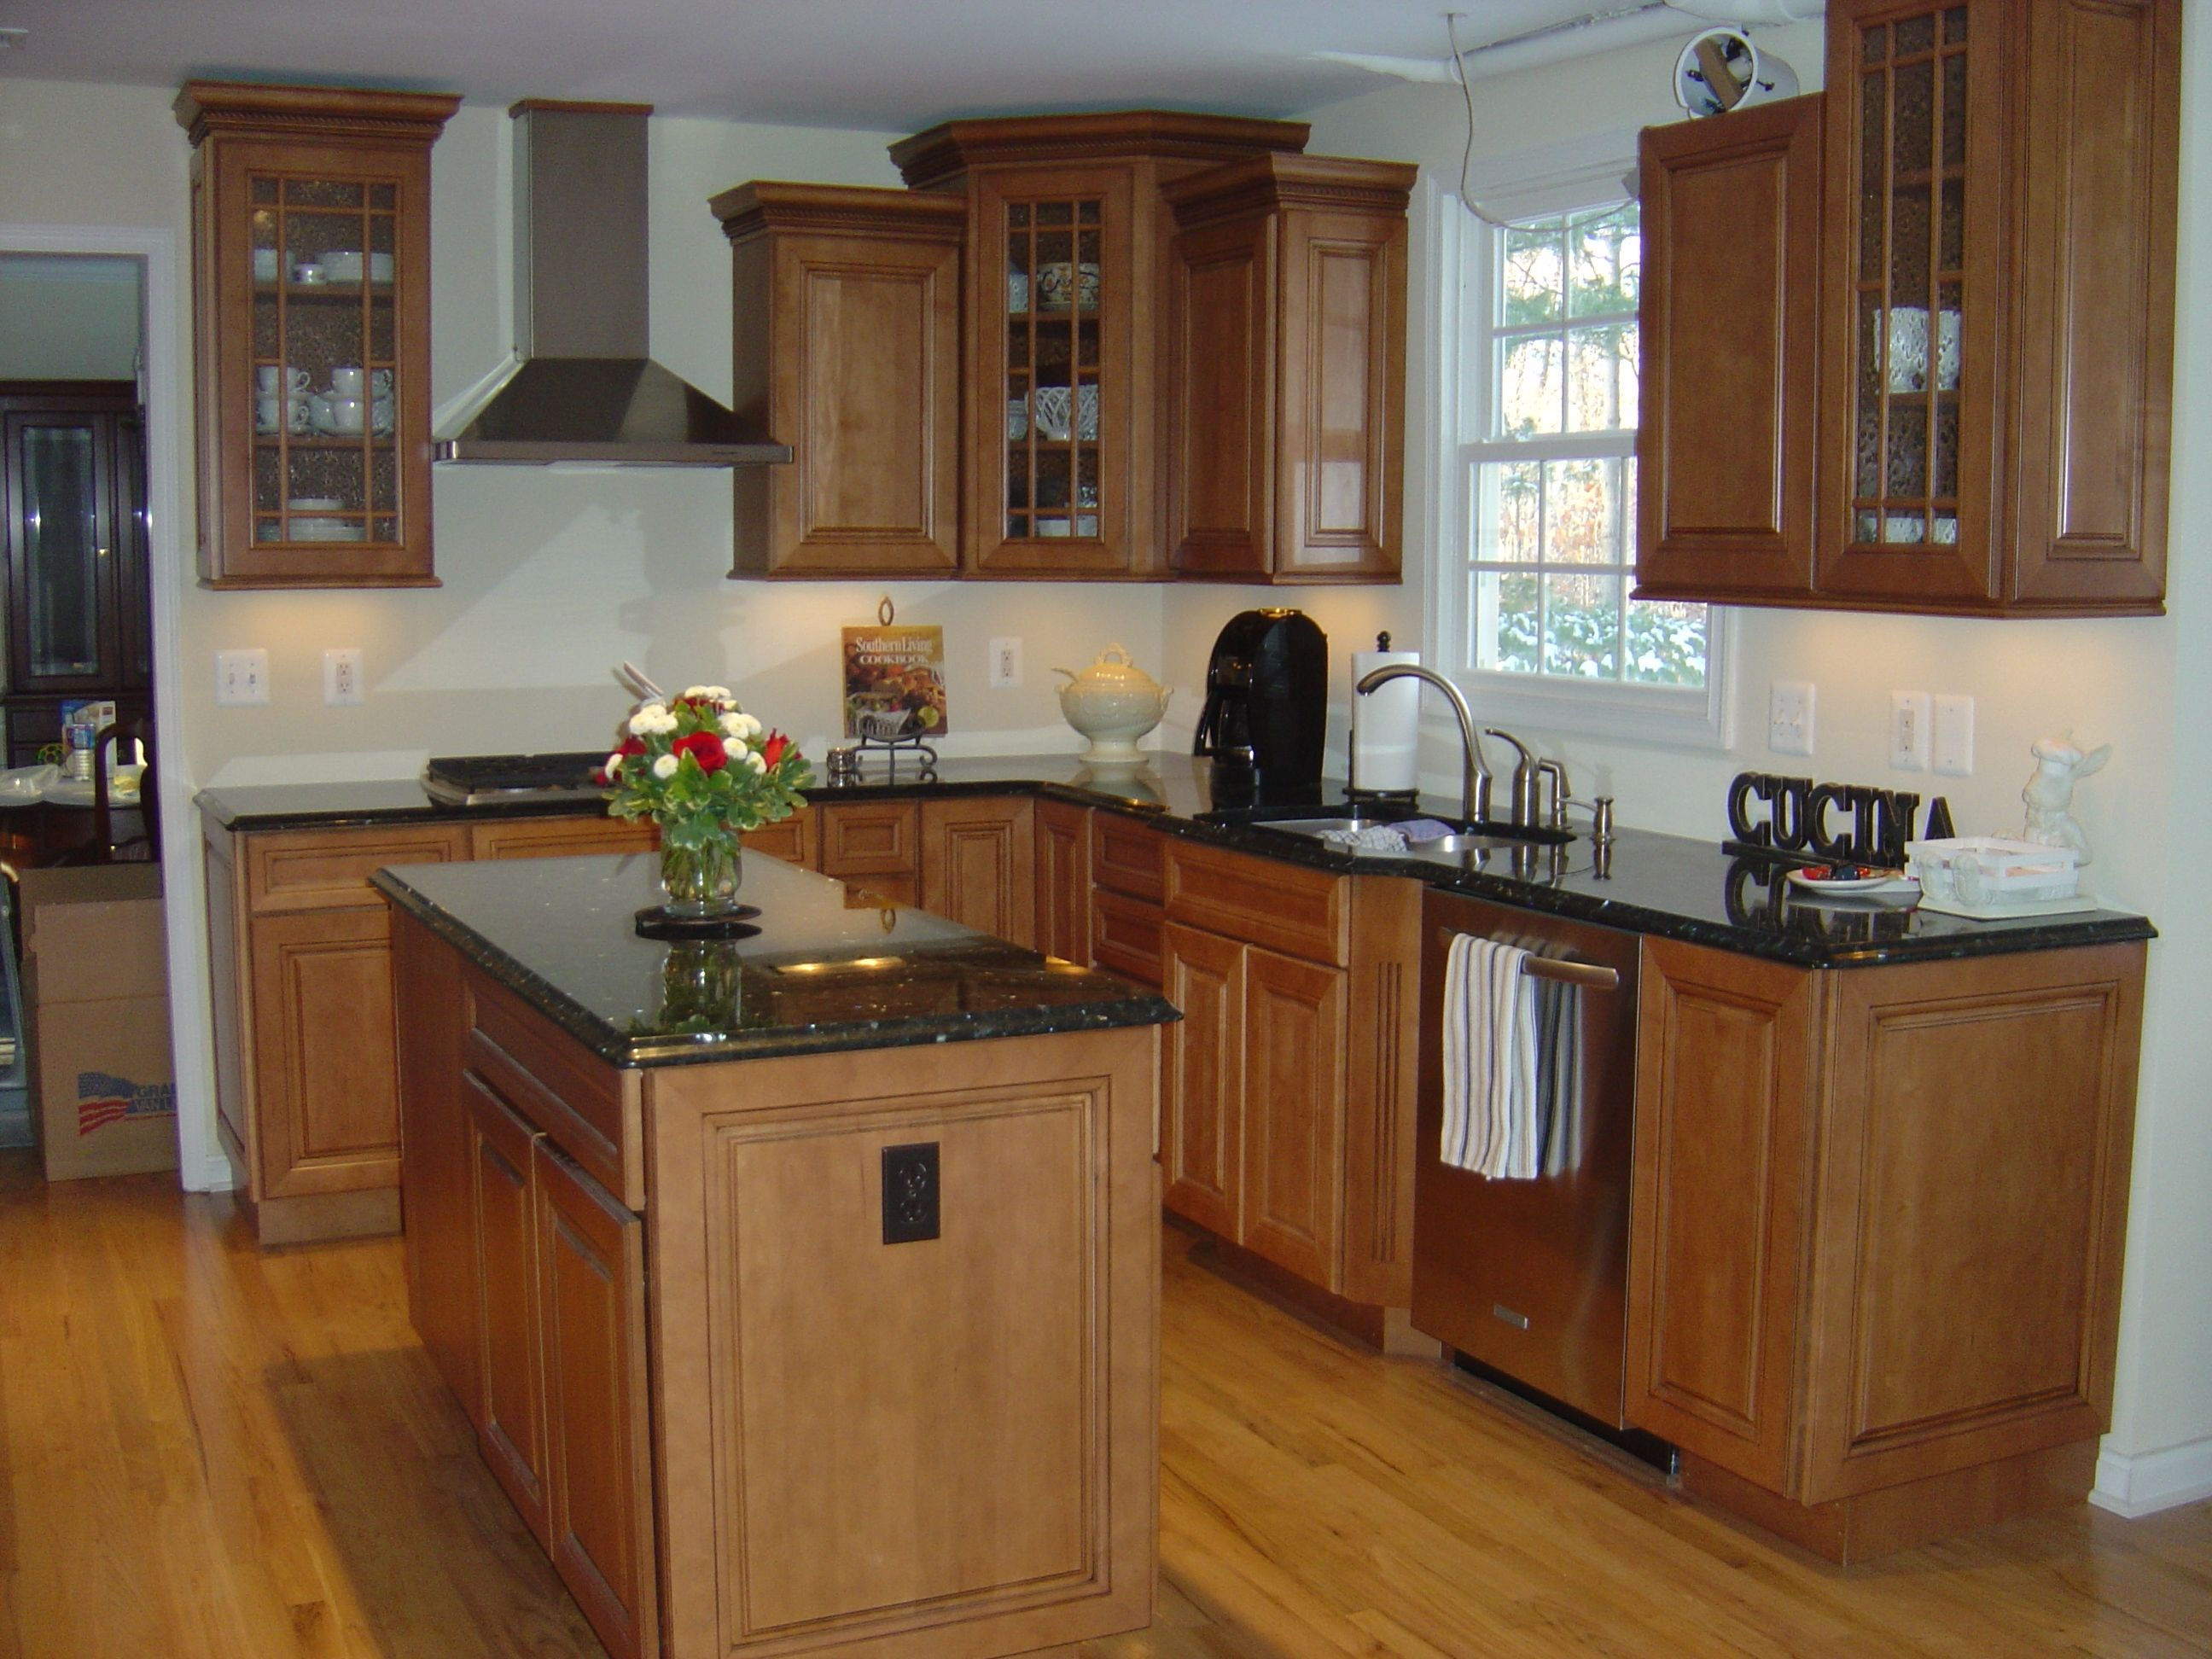 Maple cabinets with black countertops